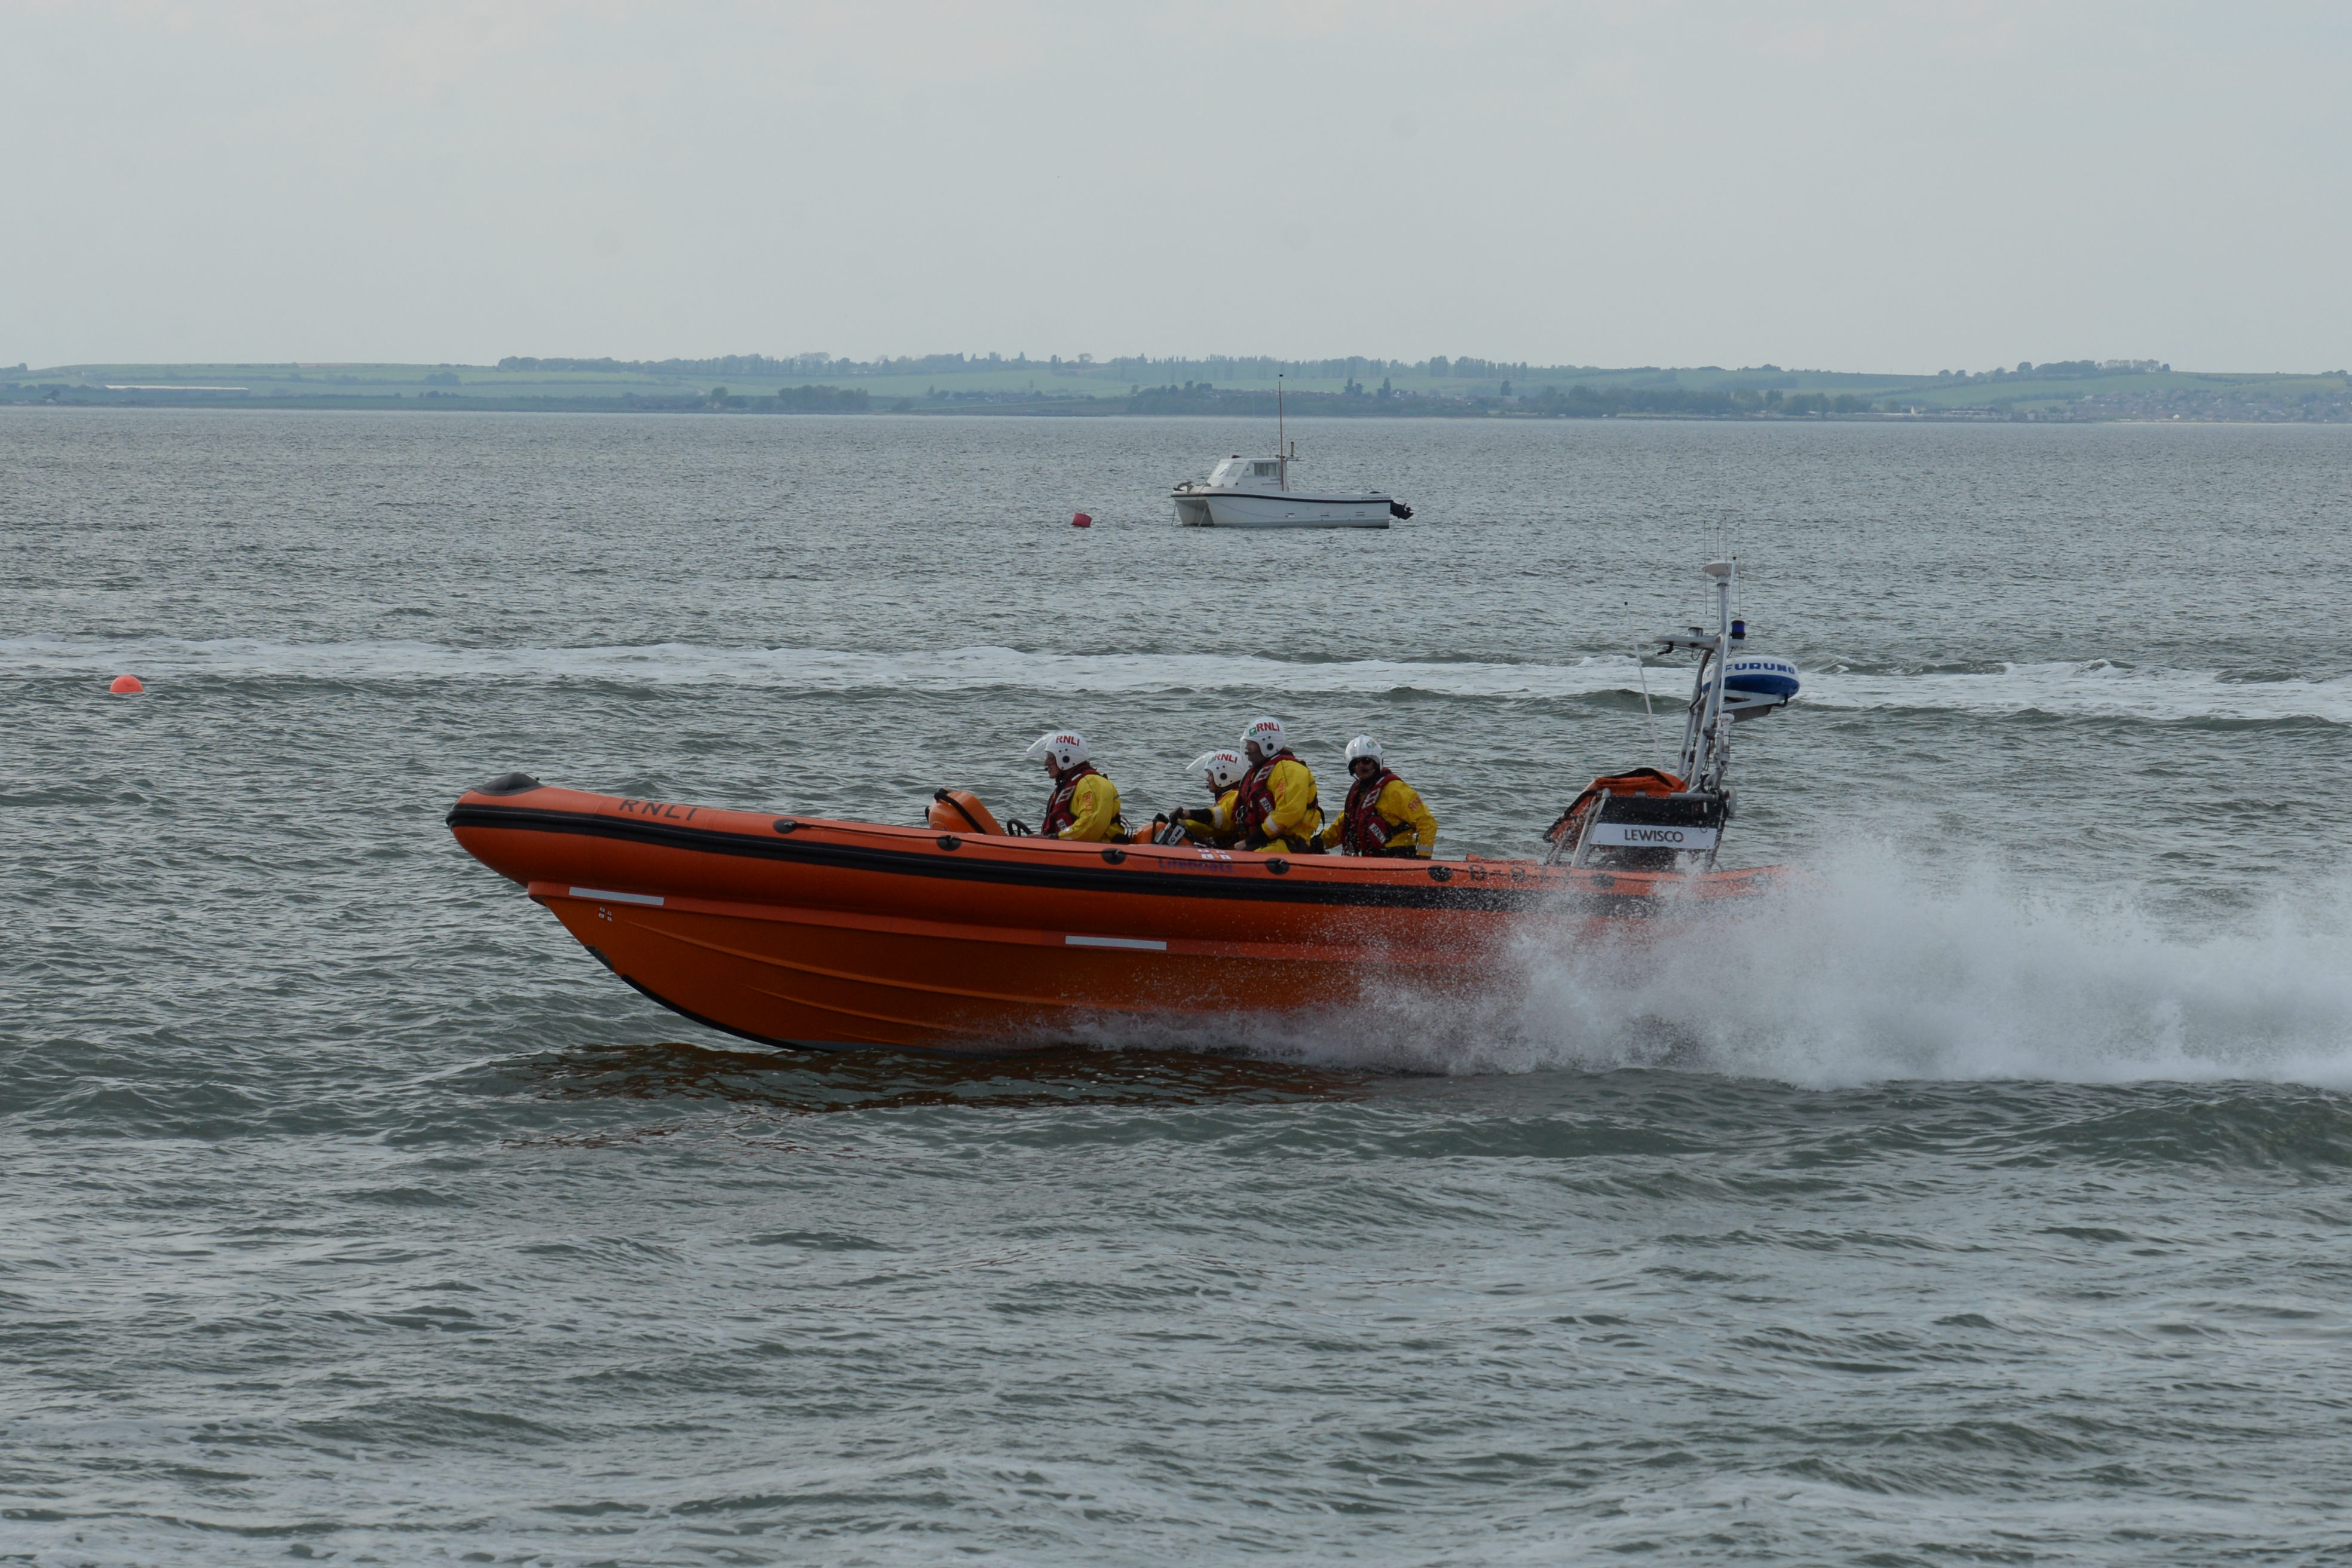 Lewisco, the Whitstable Atlantic 85 lifeboat.